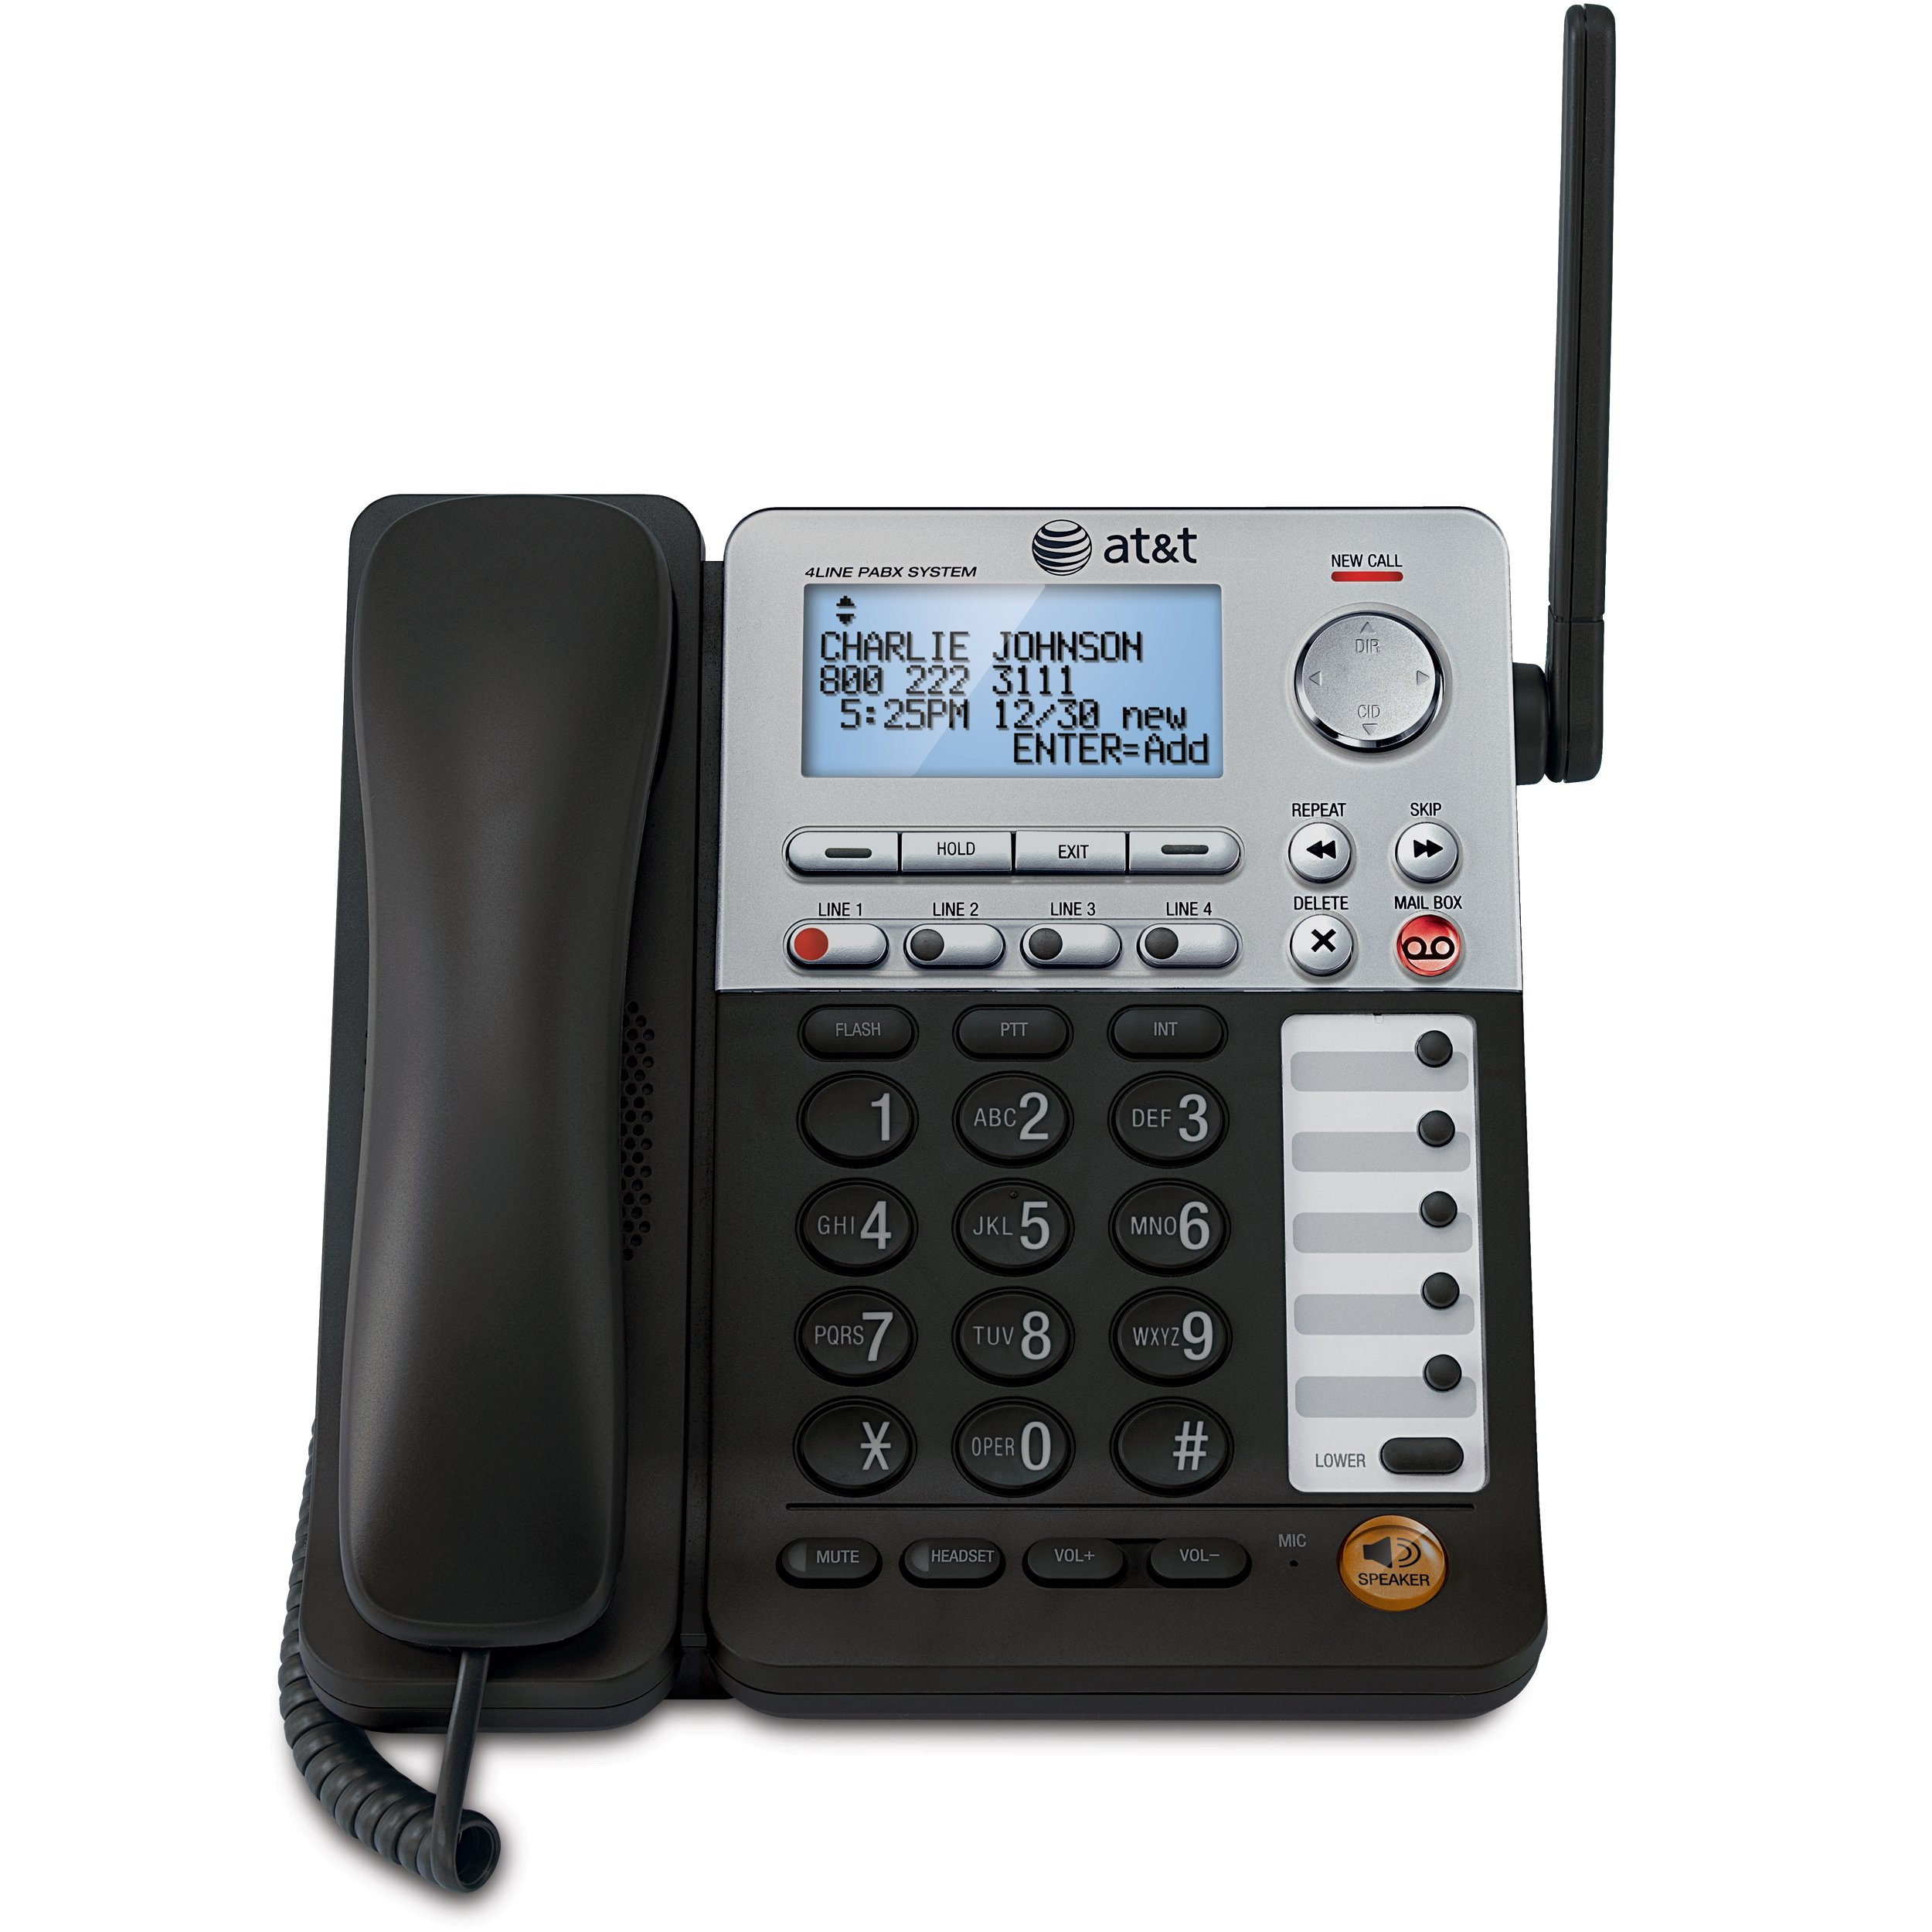 AT&T SynJ SB67148 DECT 6.0 Cordless Deskset for the AT&T SynJ SB67138 & SB67158 Small Business Phone System